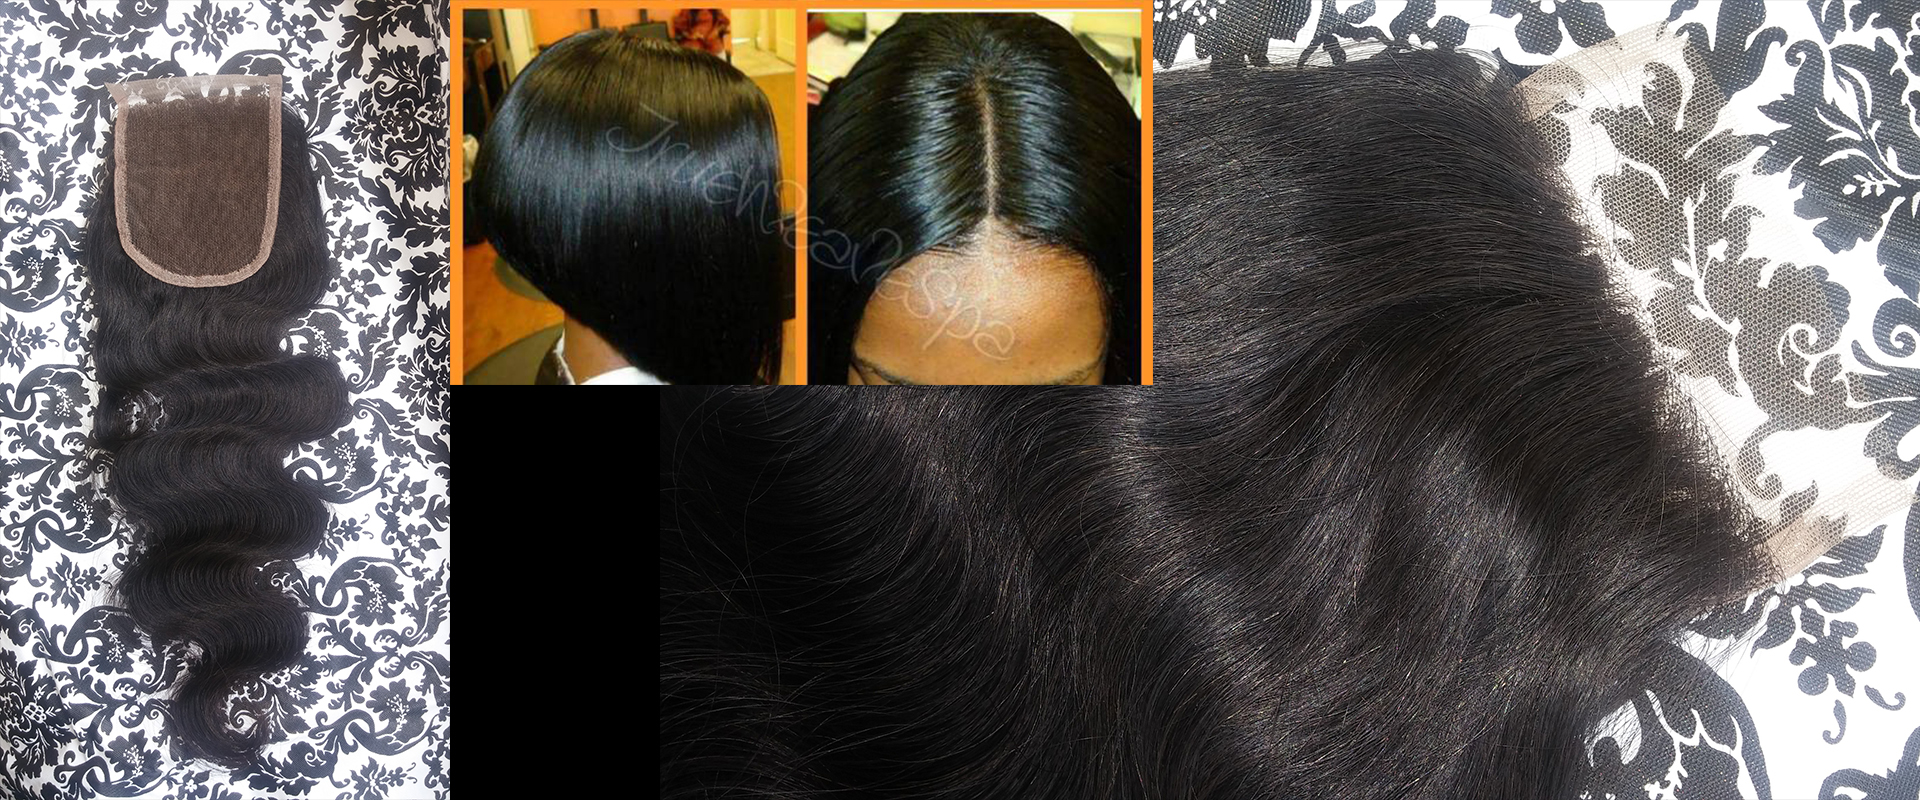 True Weave Spa Norfolk Va Hair Salon Crochet Braids Sew In